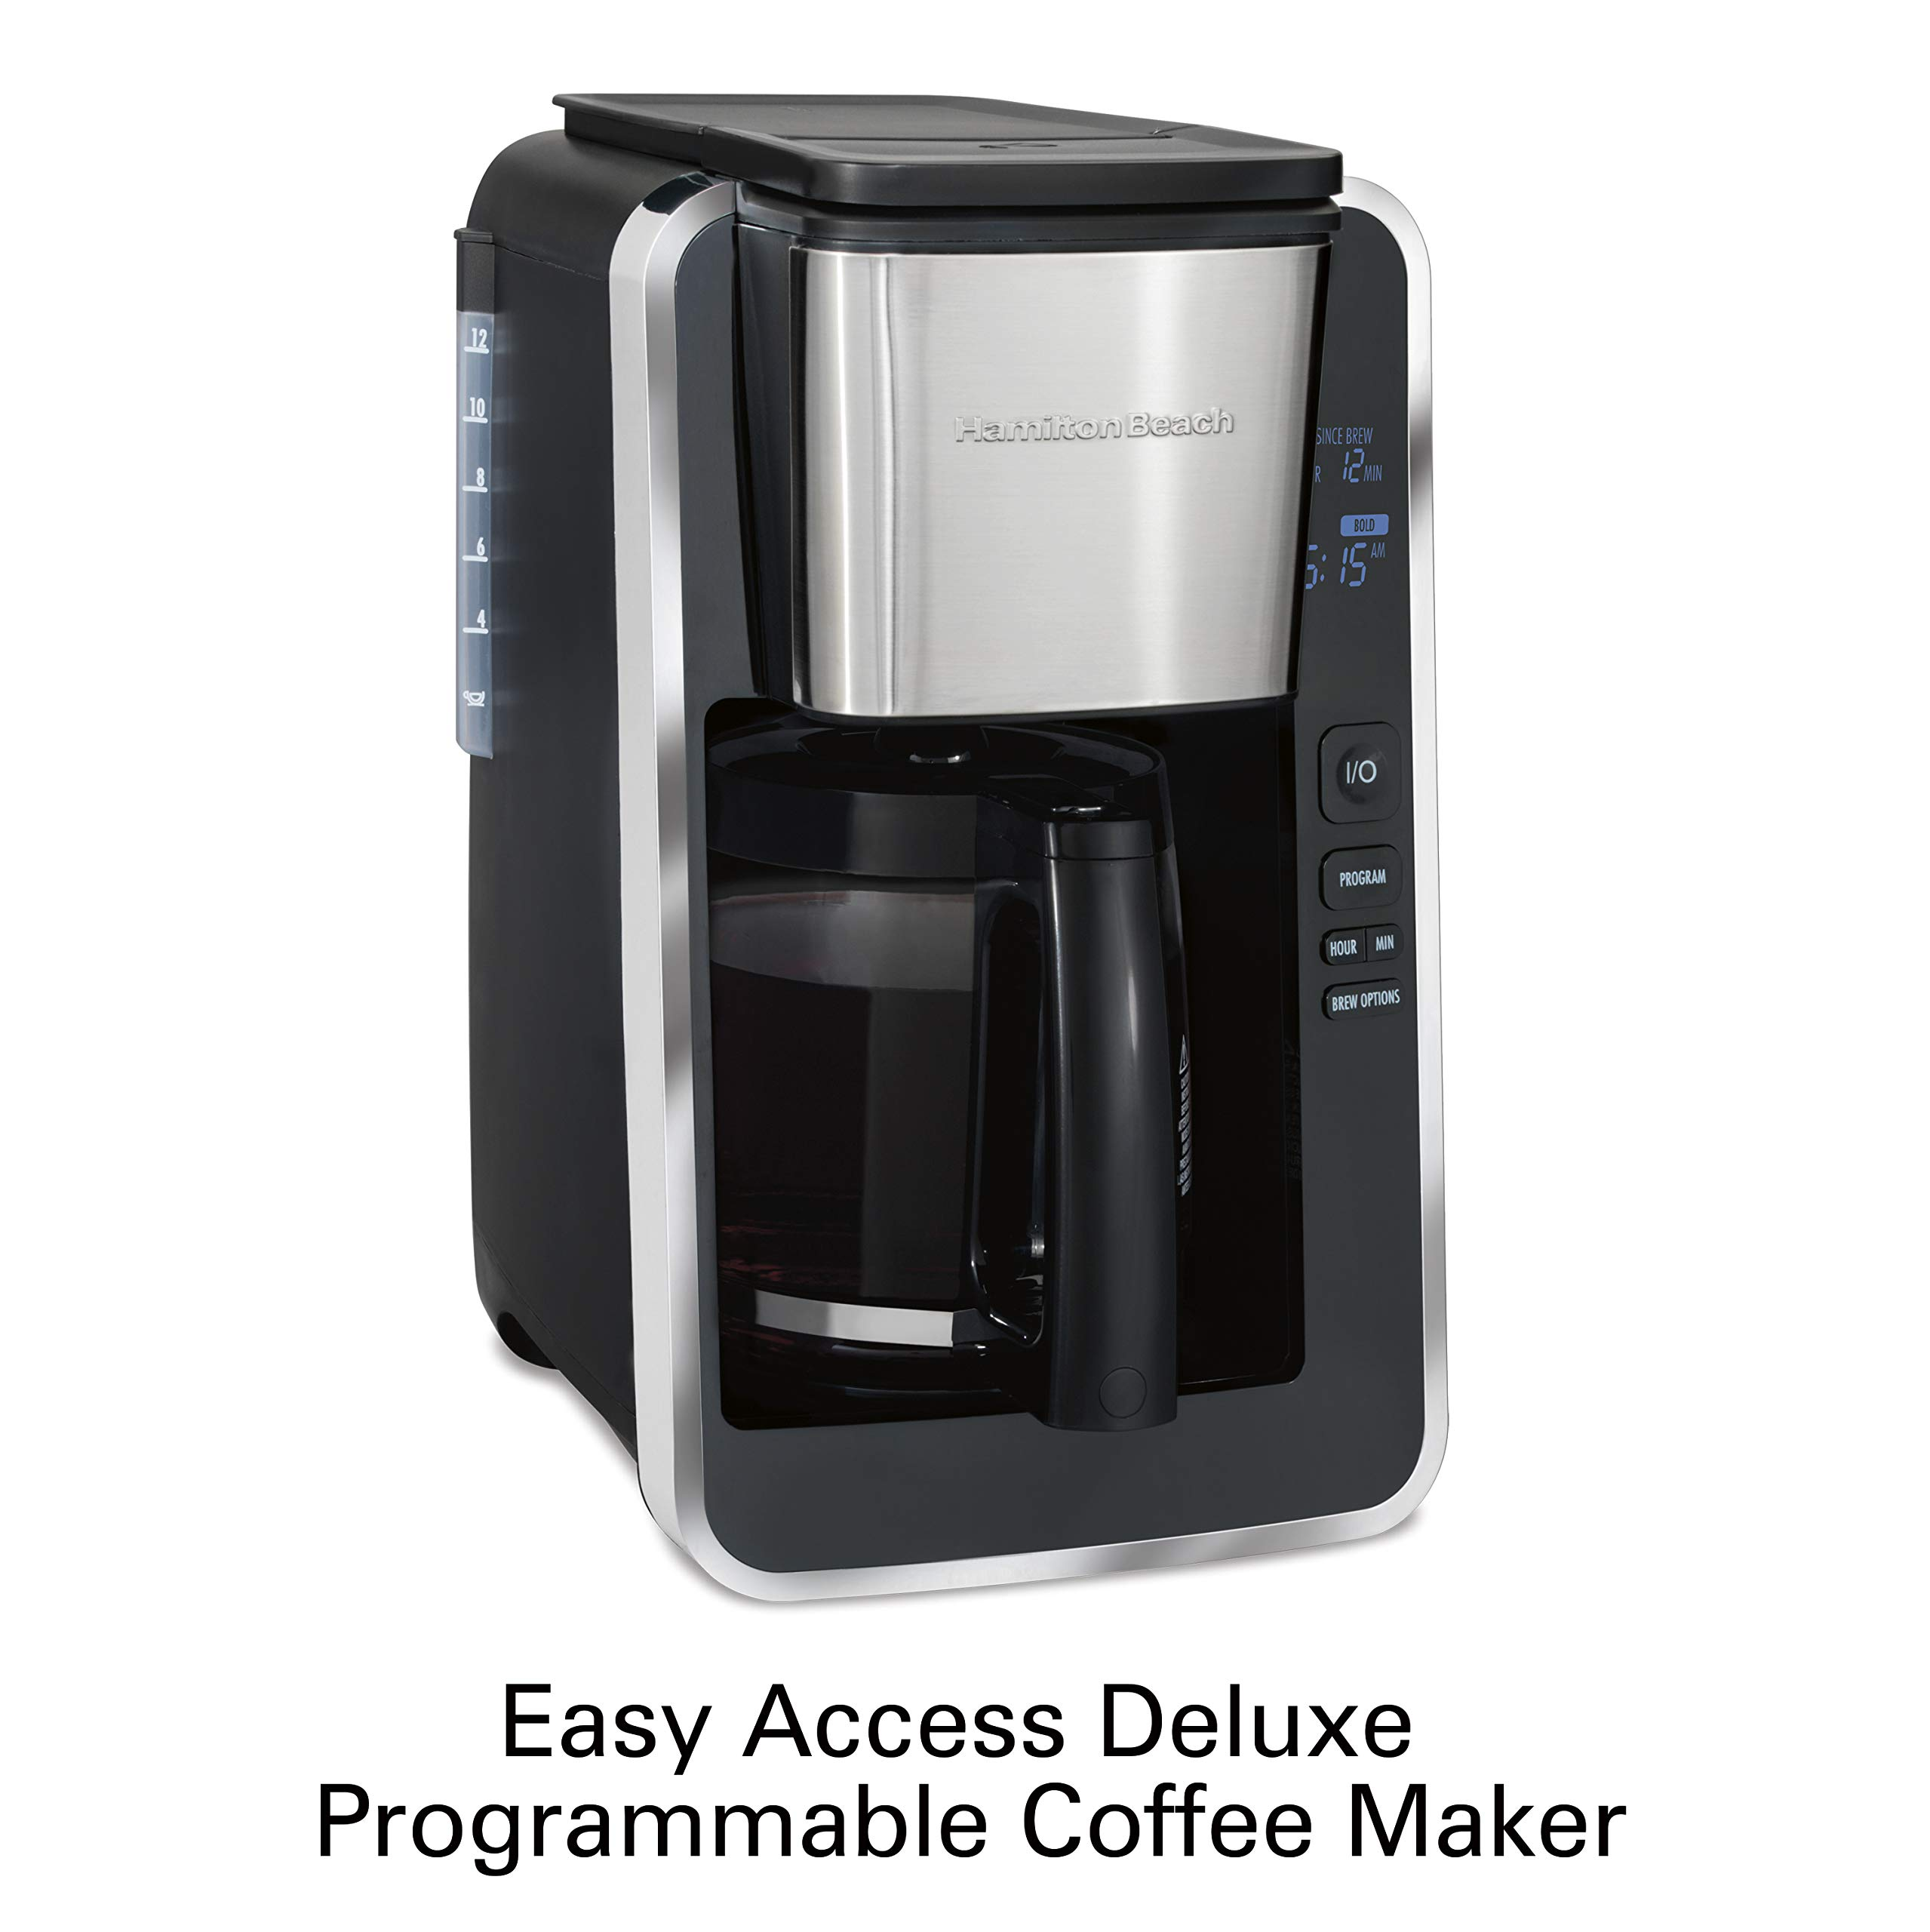 Hamilton Beach Programmable 12 Cup Coffee Maker, Easy Front Access Deluxe, Brew Options, Black and Stainless (46320), by Hamilton Beach (Image #2)